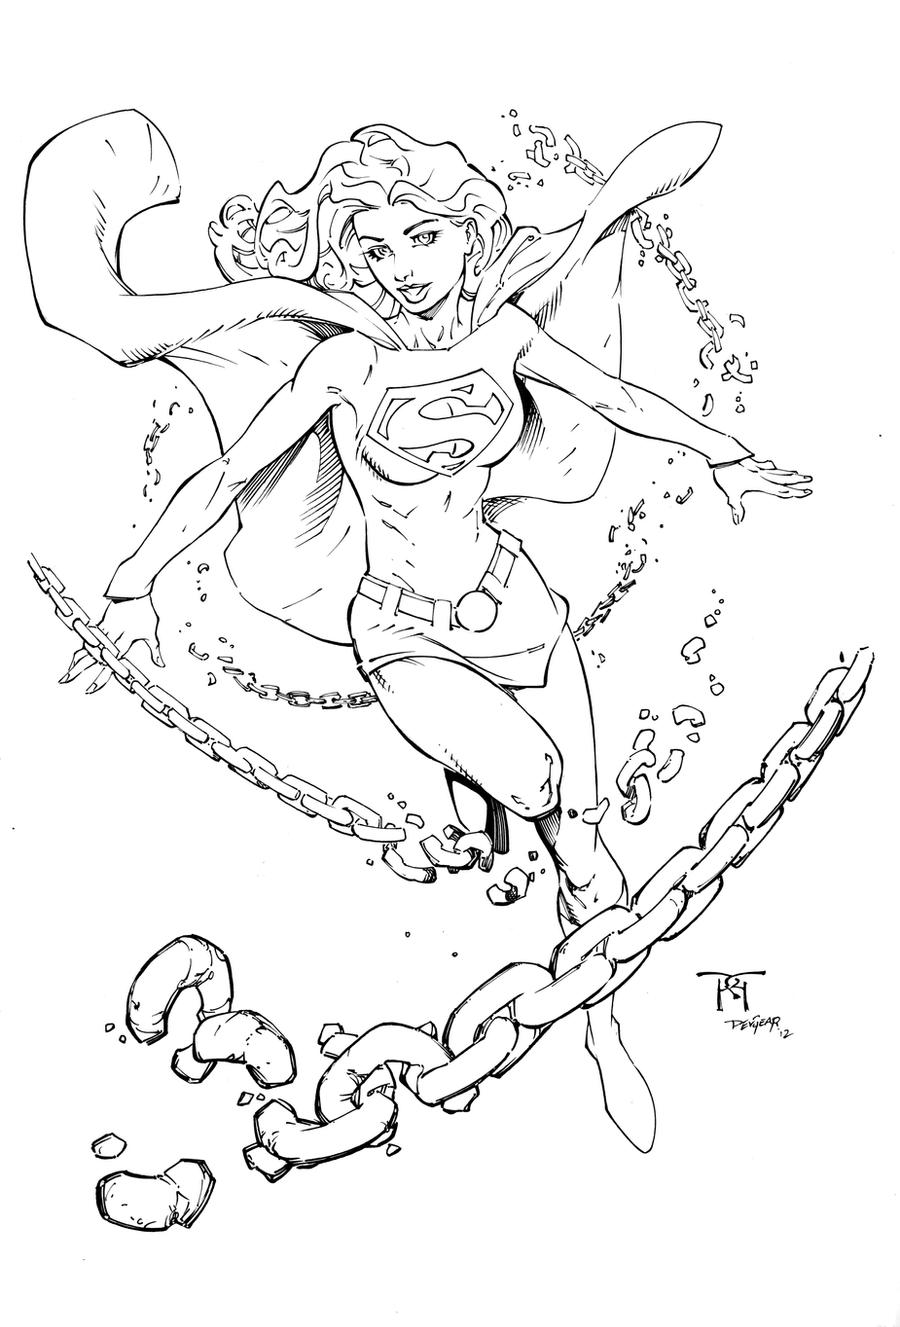 Supergirl inks by devgear on deviantart for Supergirl coloring page